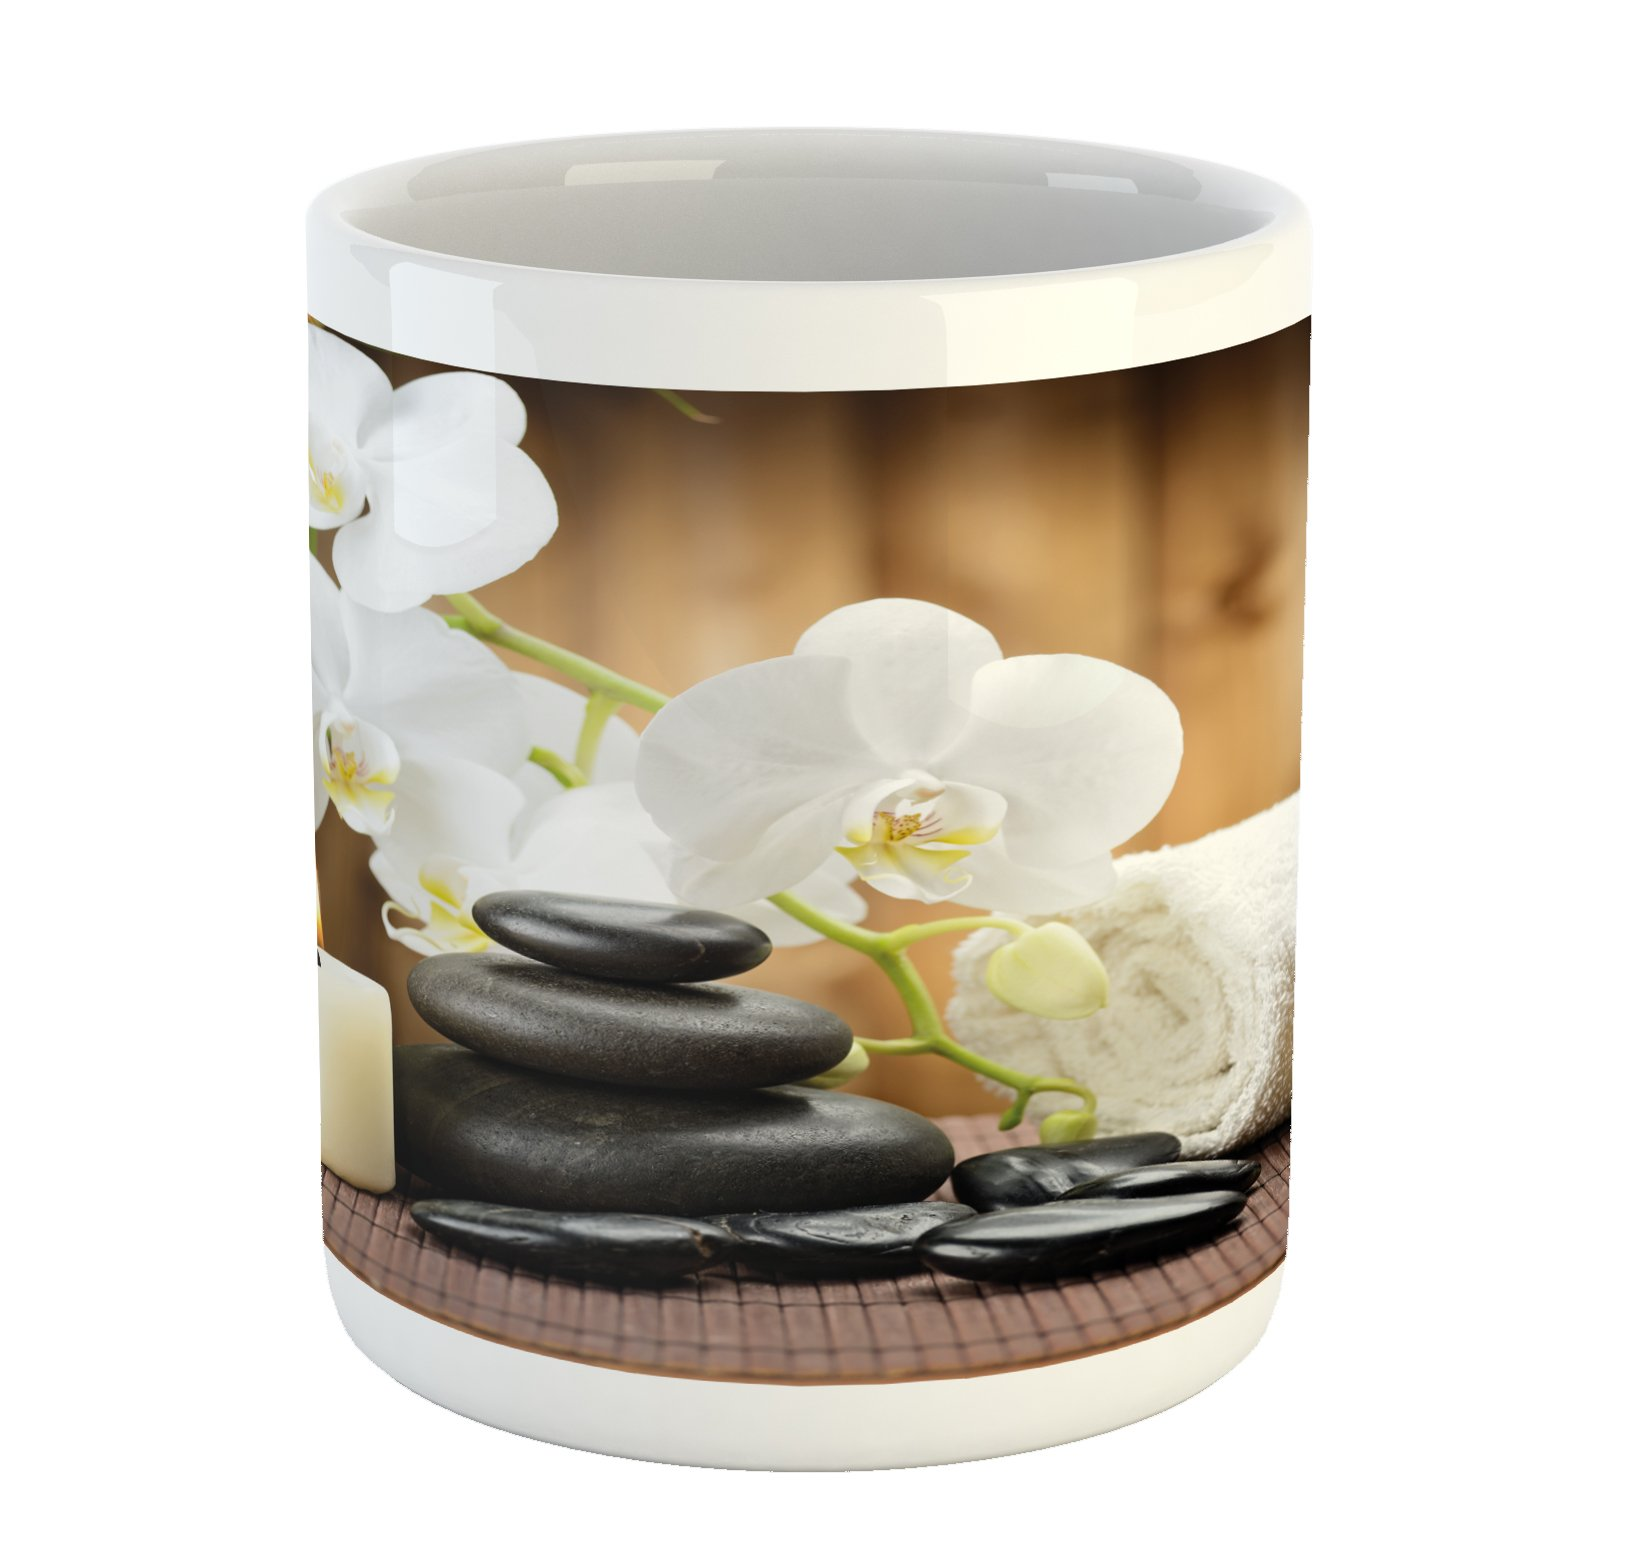 Ambesonne Spa Mug, Asian Spa Style Arrangement with Zen Stones Candle Flowers and Bamboo Art, Printed Ceramic Coffee Mug Water Tea Drinks Cup, White Green and Black